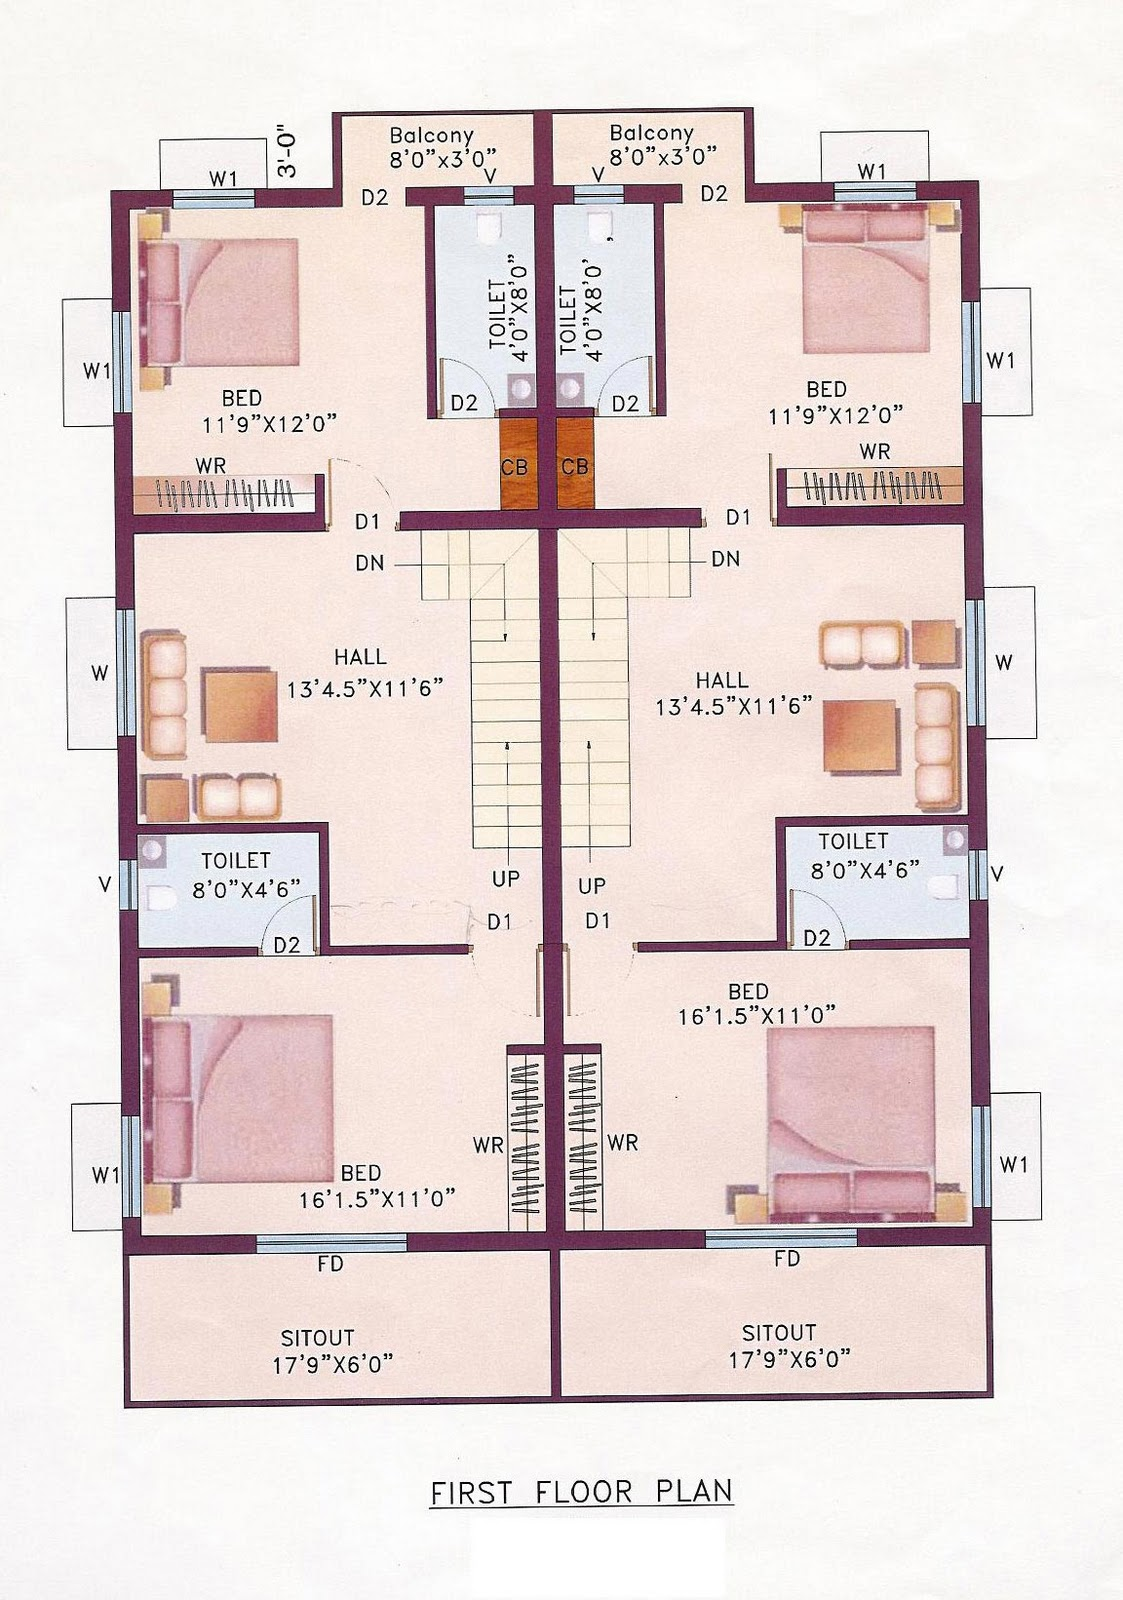 House plans and home designs free blog archive home for Small house design plans in india image